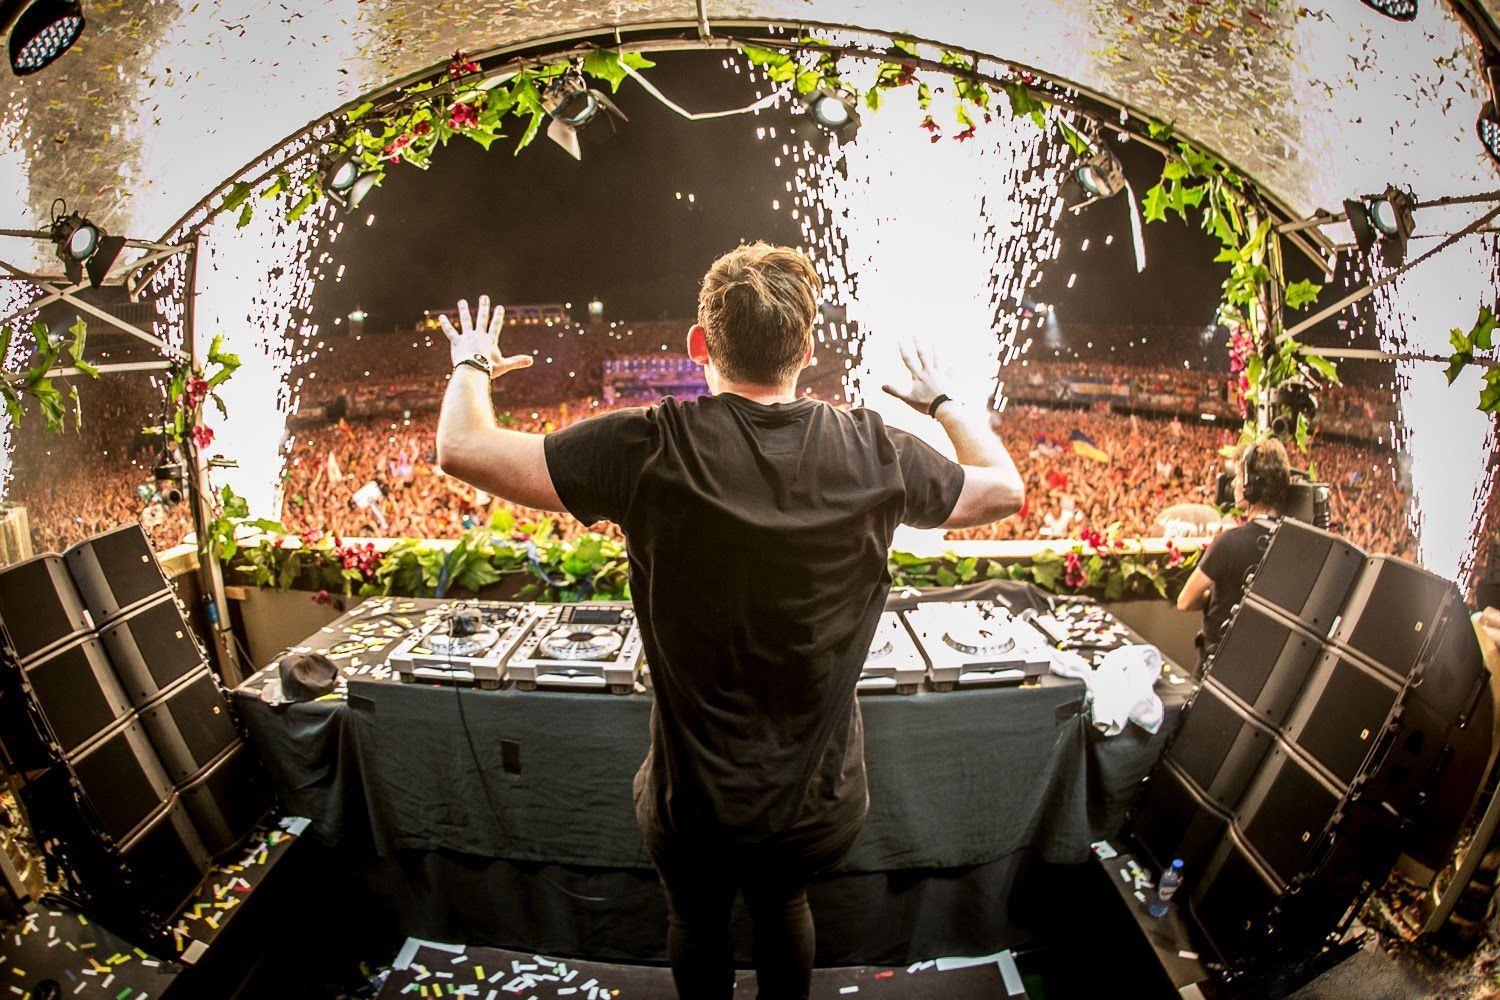 Hardwell Wallpapers And Top Mix Tomorrowland 2014 Musica Electronica Edm